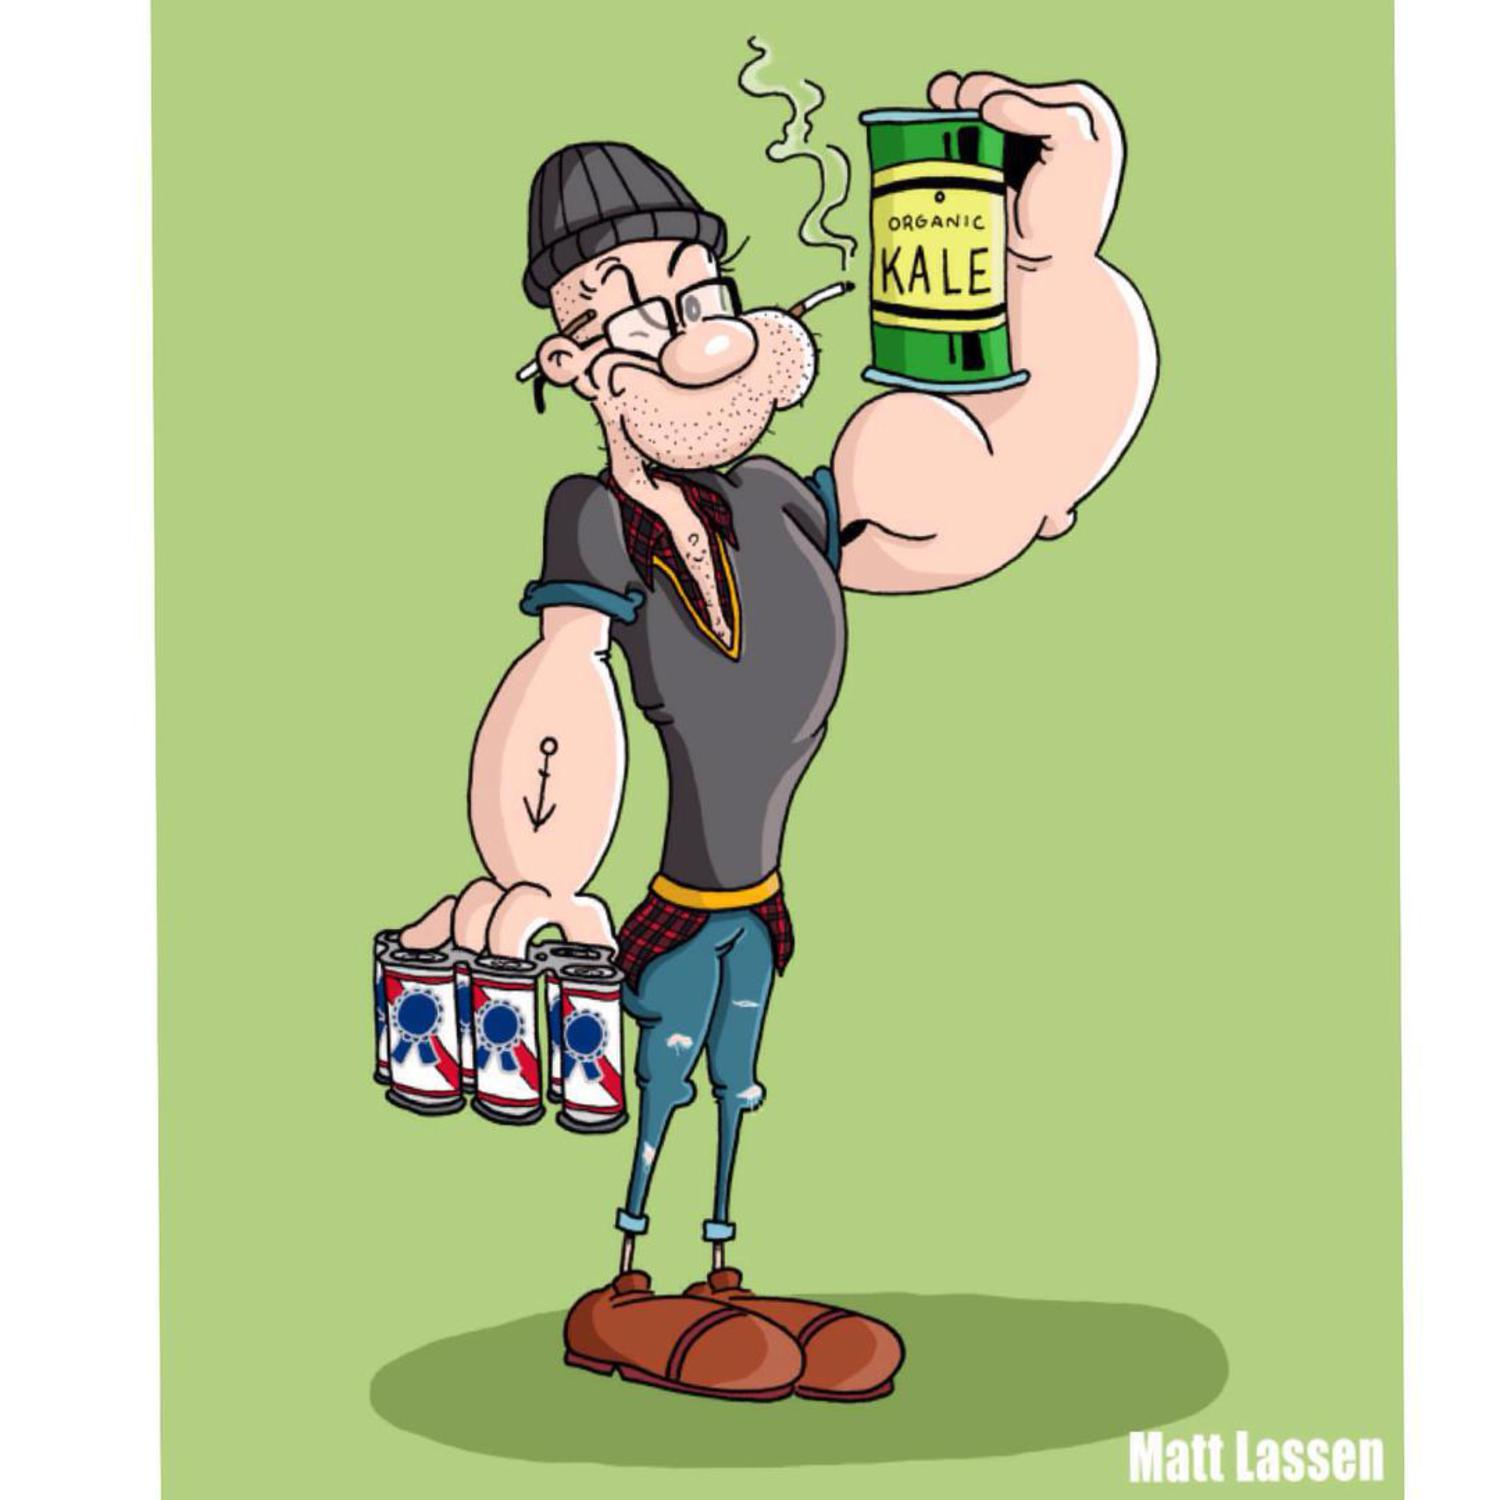 Hipster Popeye (No. 4 in a series) #cartoon #illustration #hipster #kale #art #beanie #pbr #pabstblueribbon #popeye